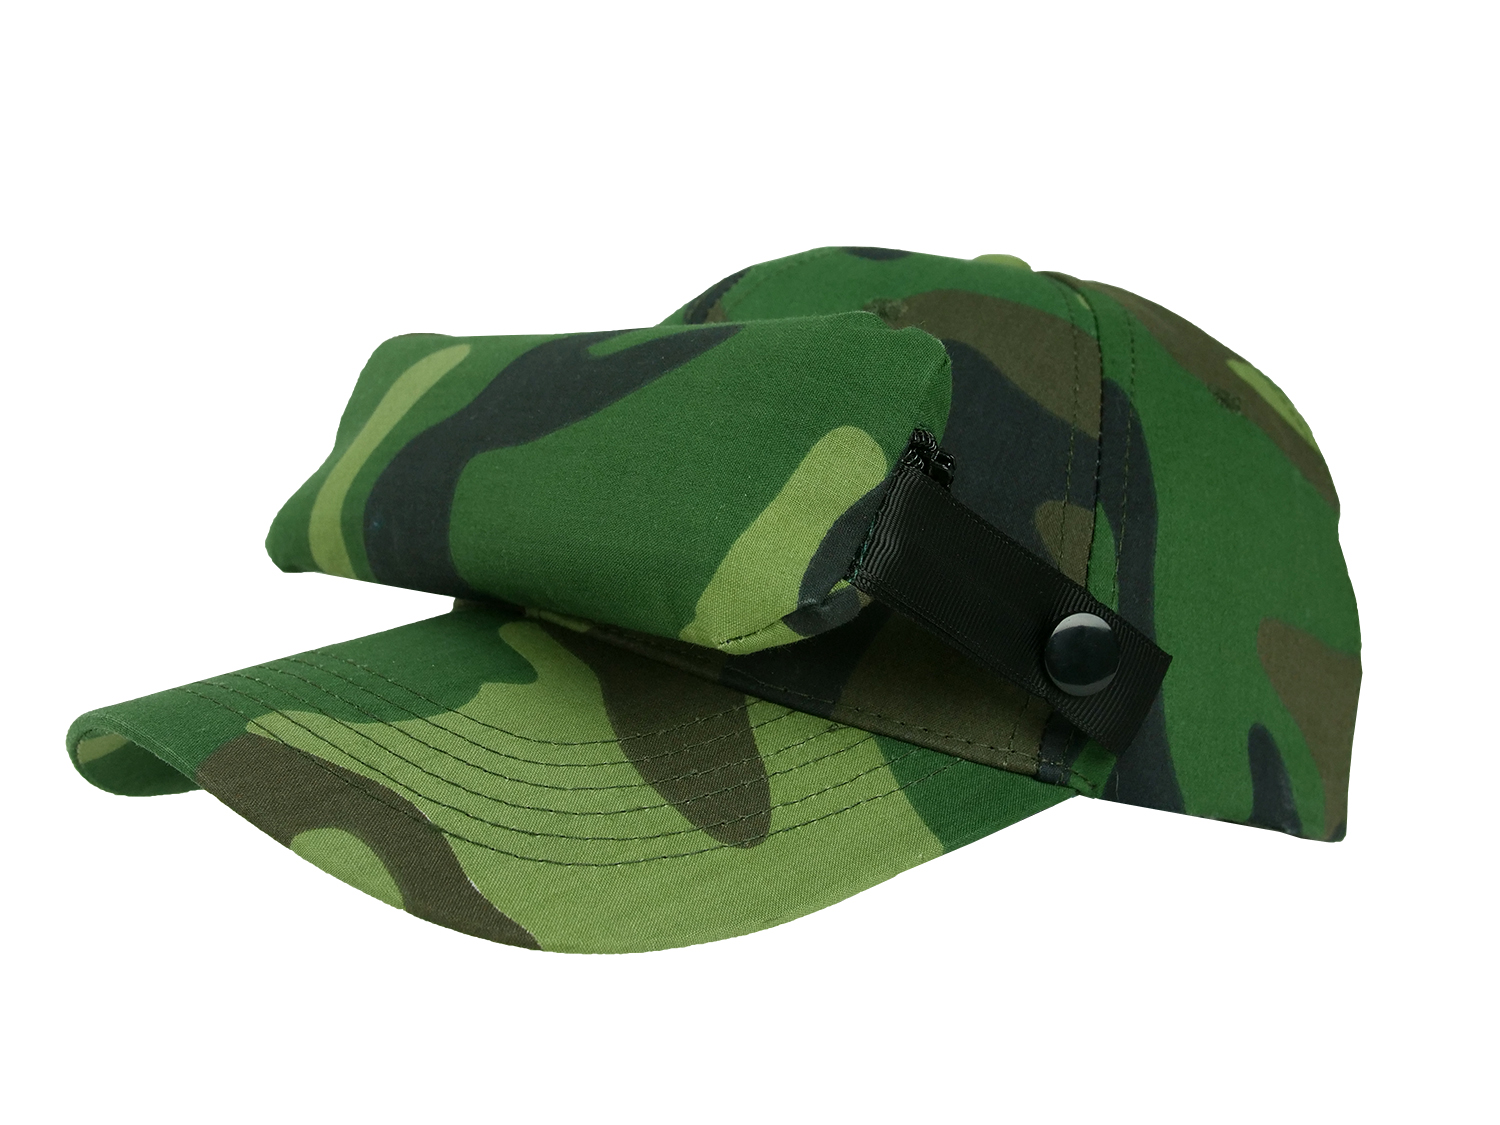 Bug Cap_Camouflage Green